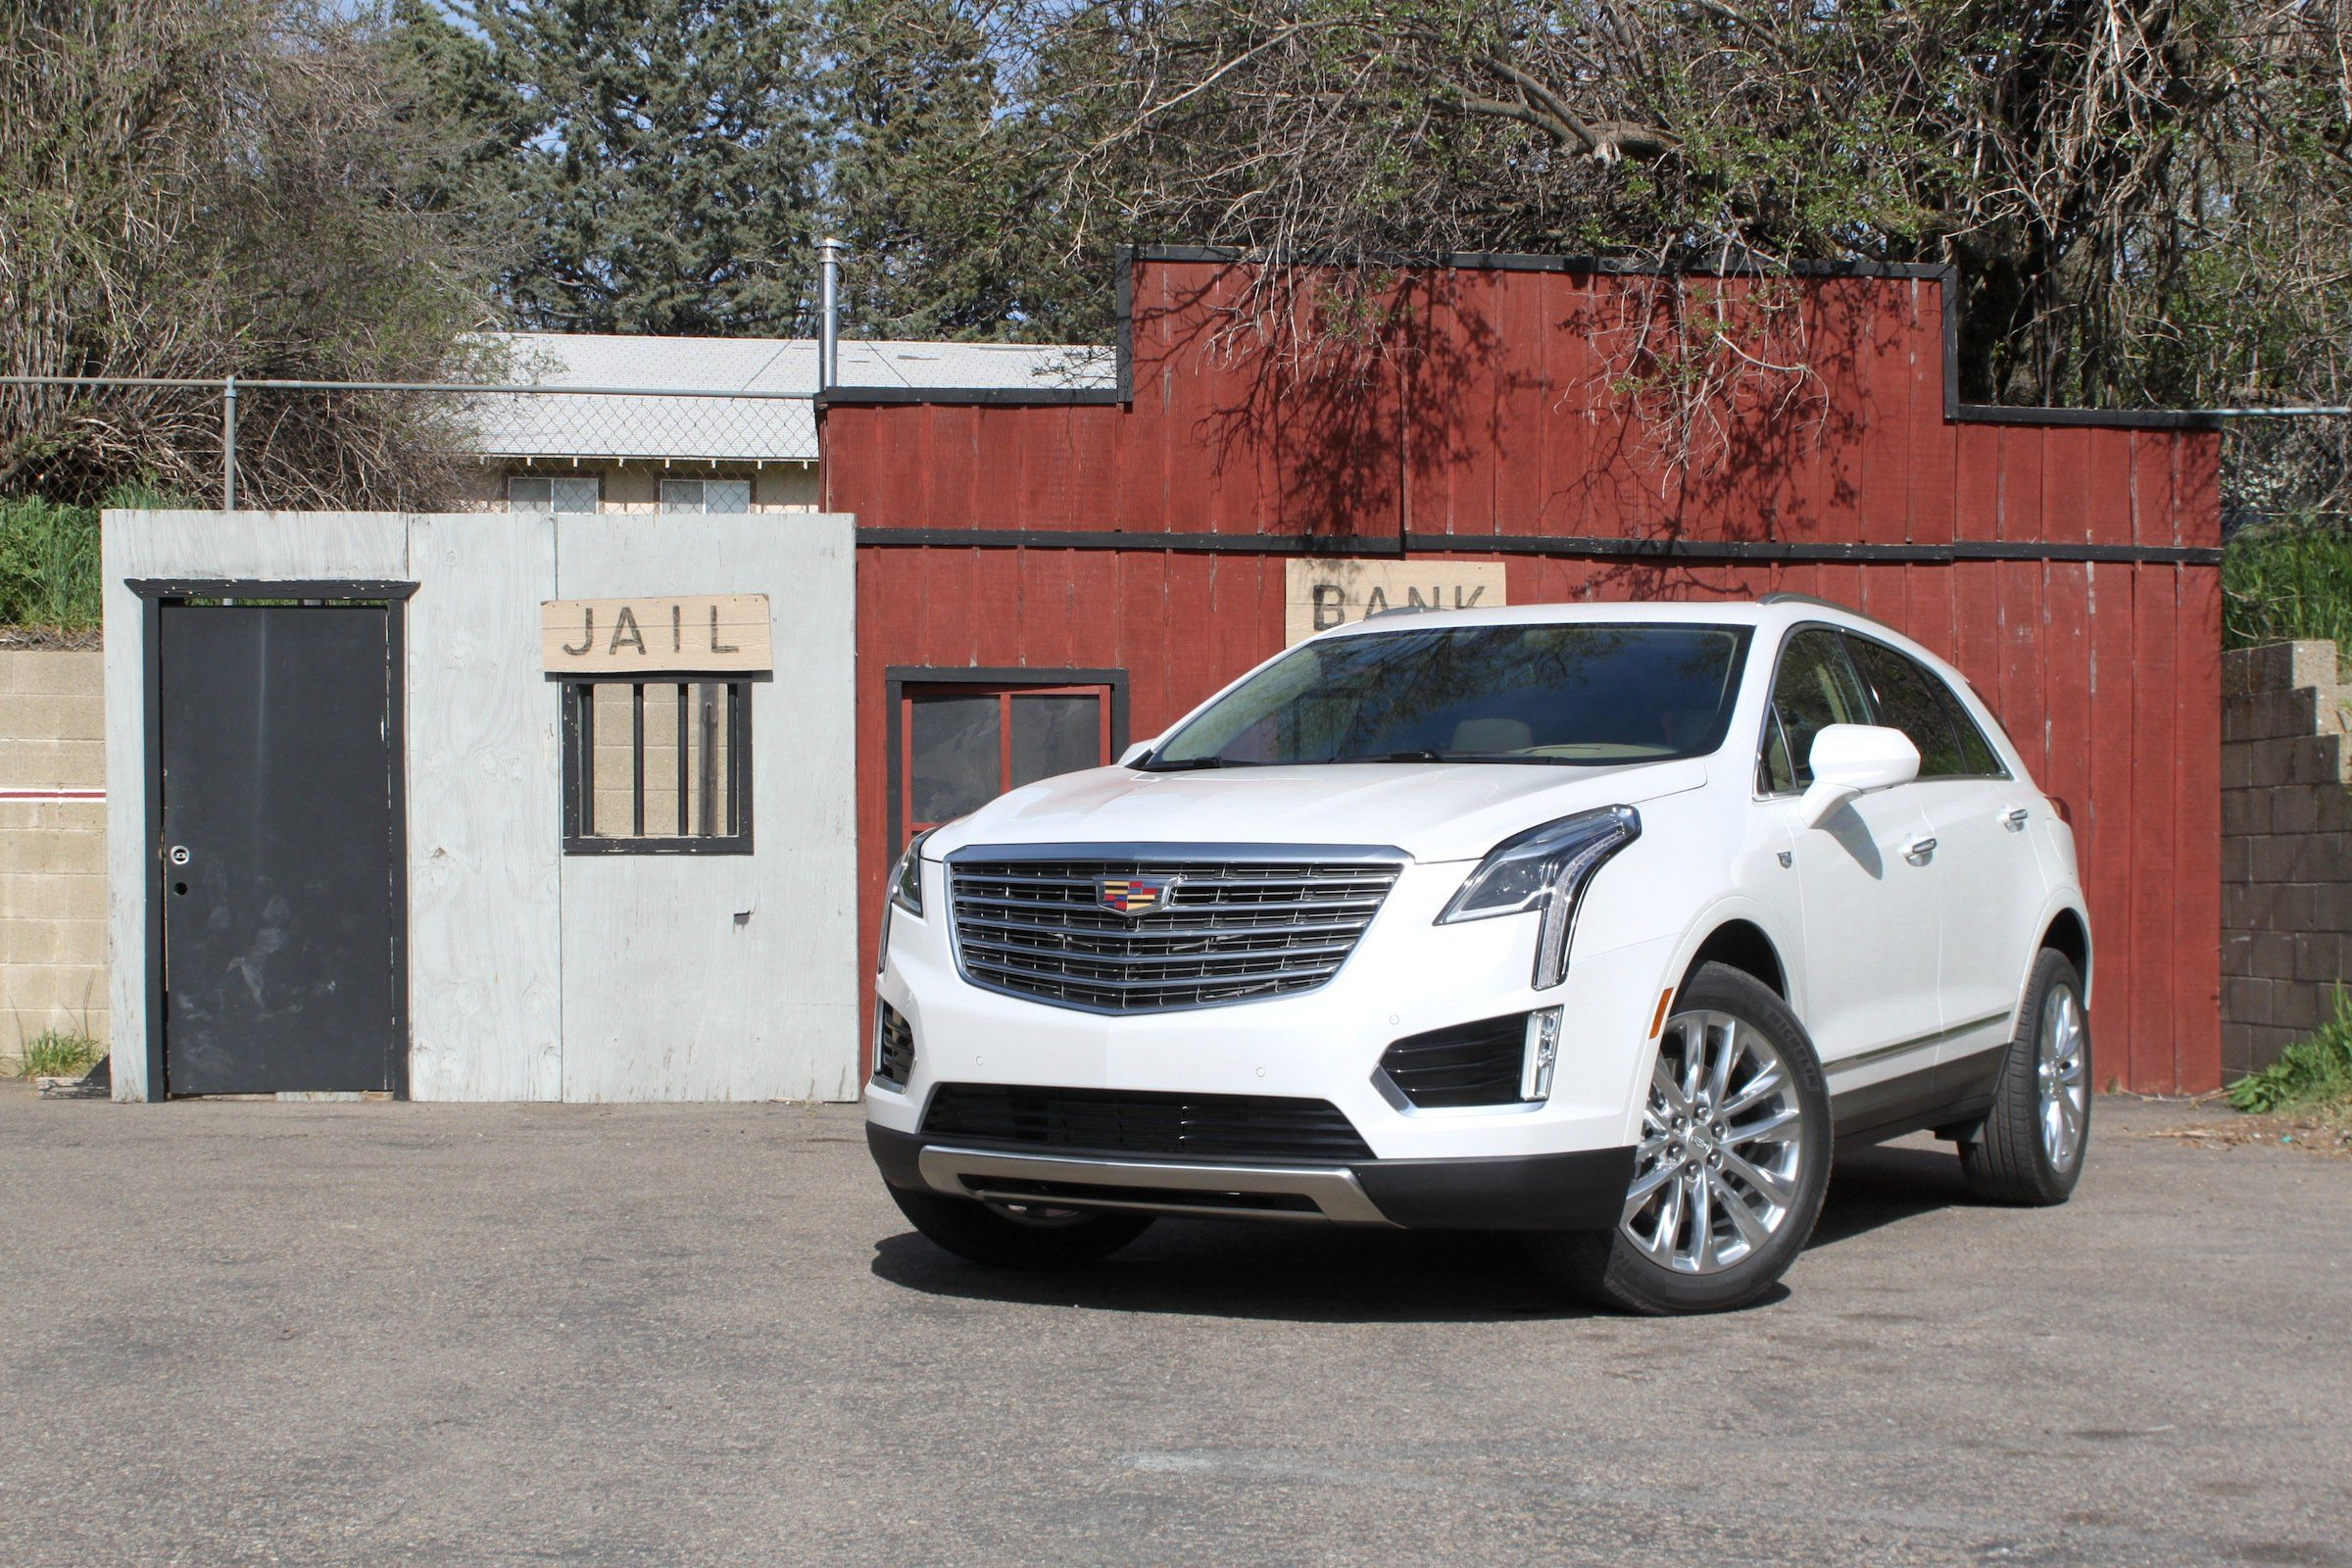 Beautiful scenery this 2017 Cadillac XT5 of course